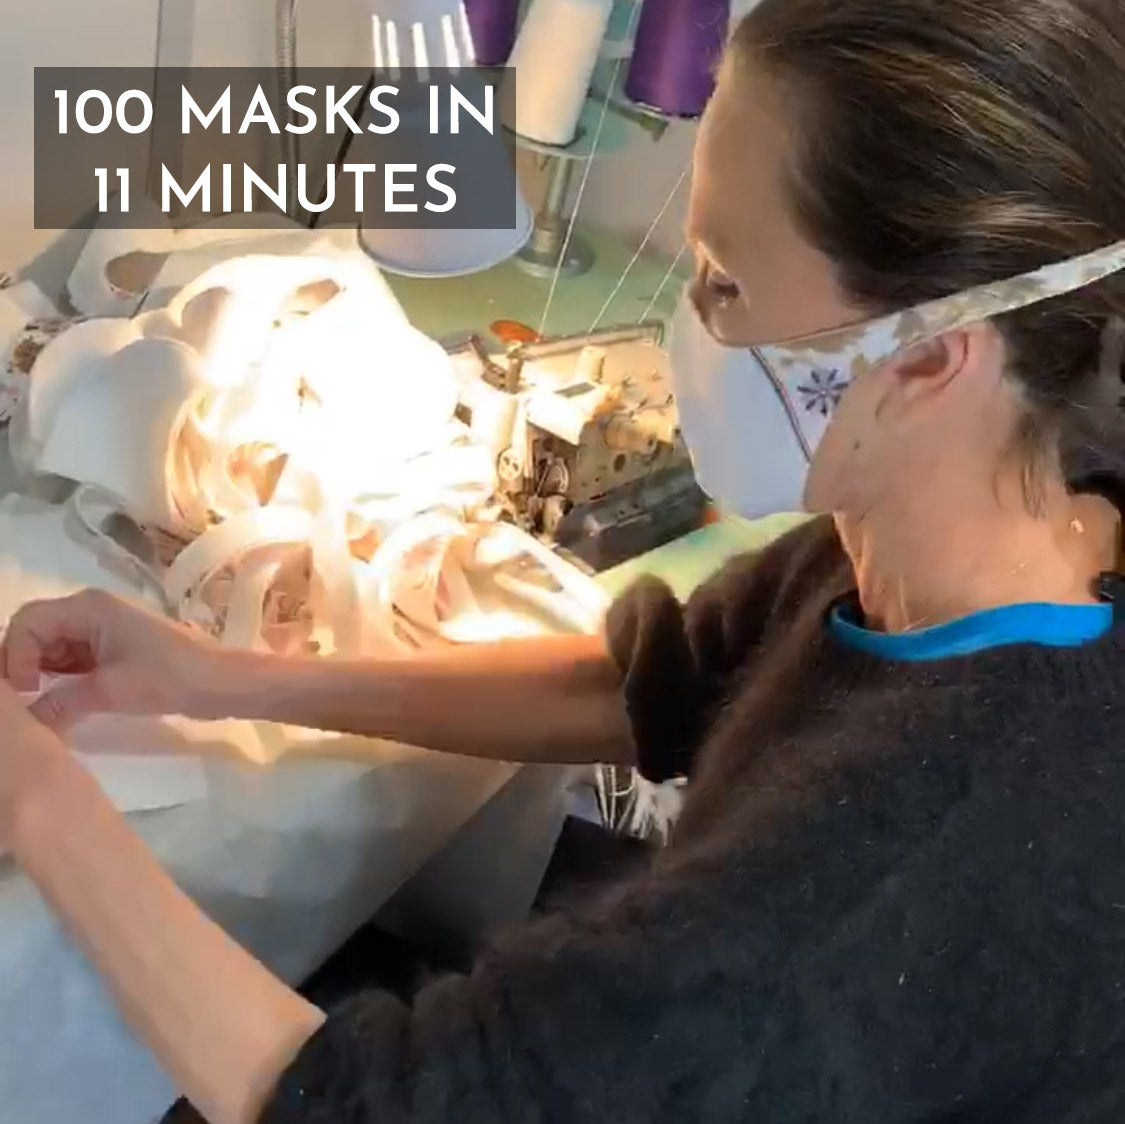 #Flattenthecurve with DIY Mask